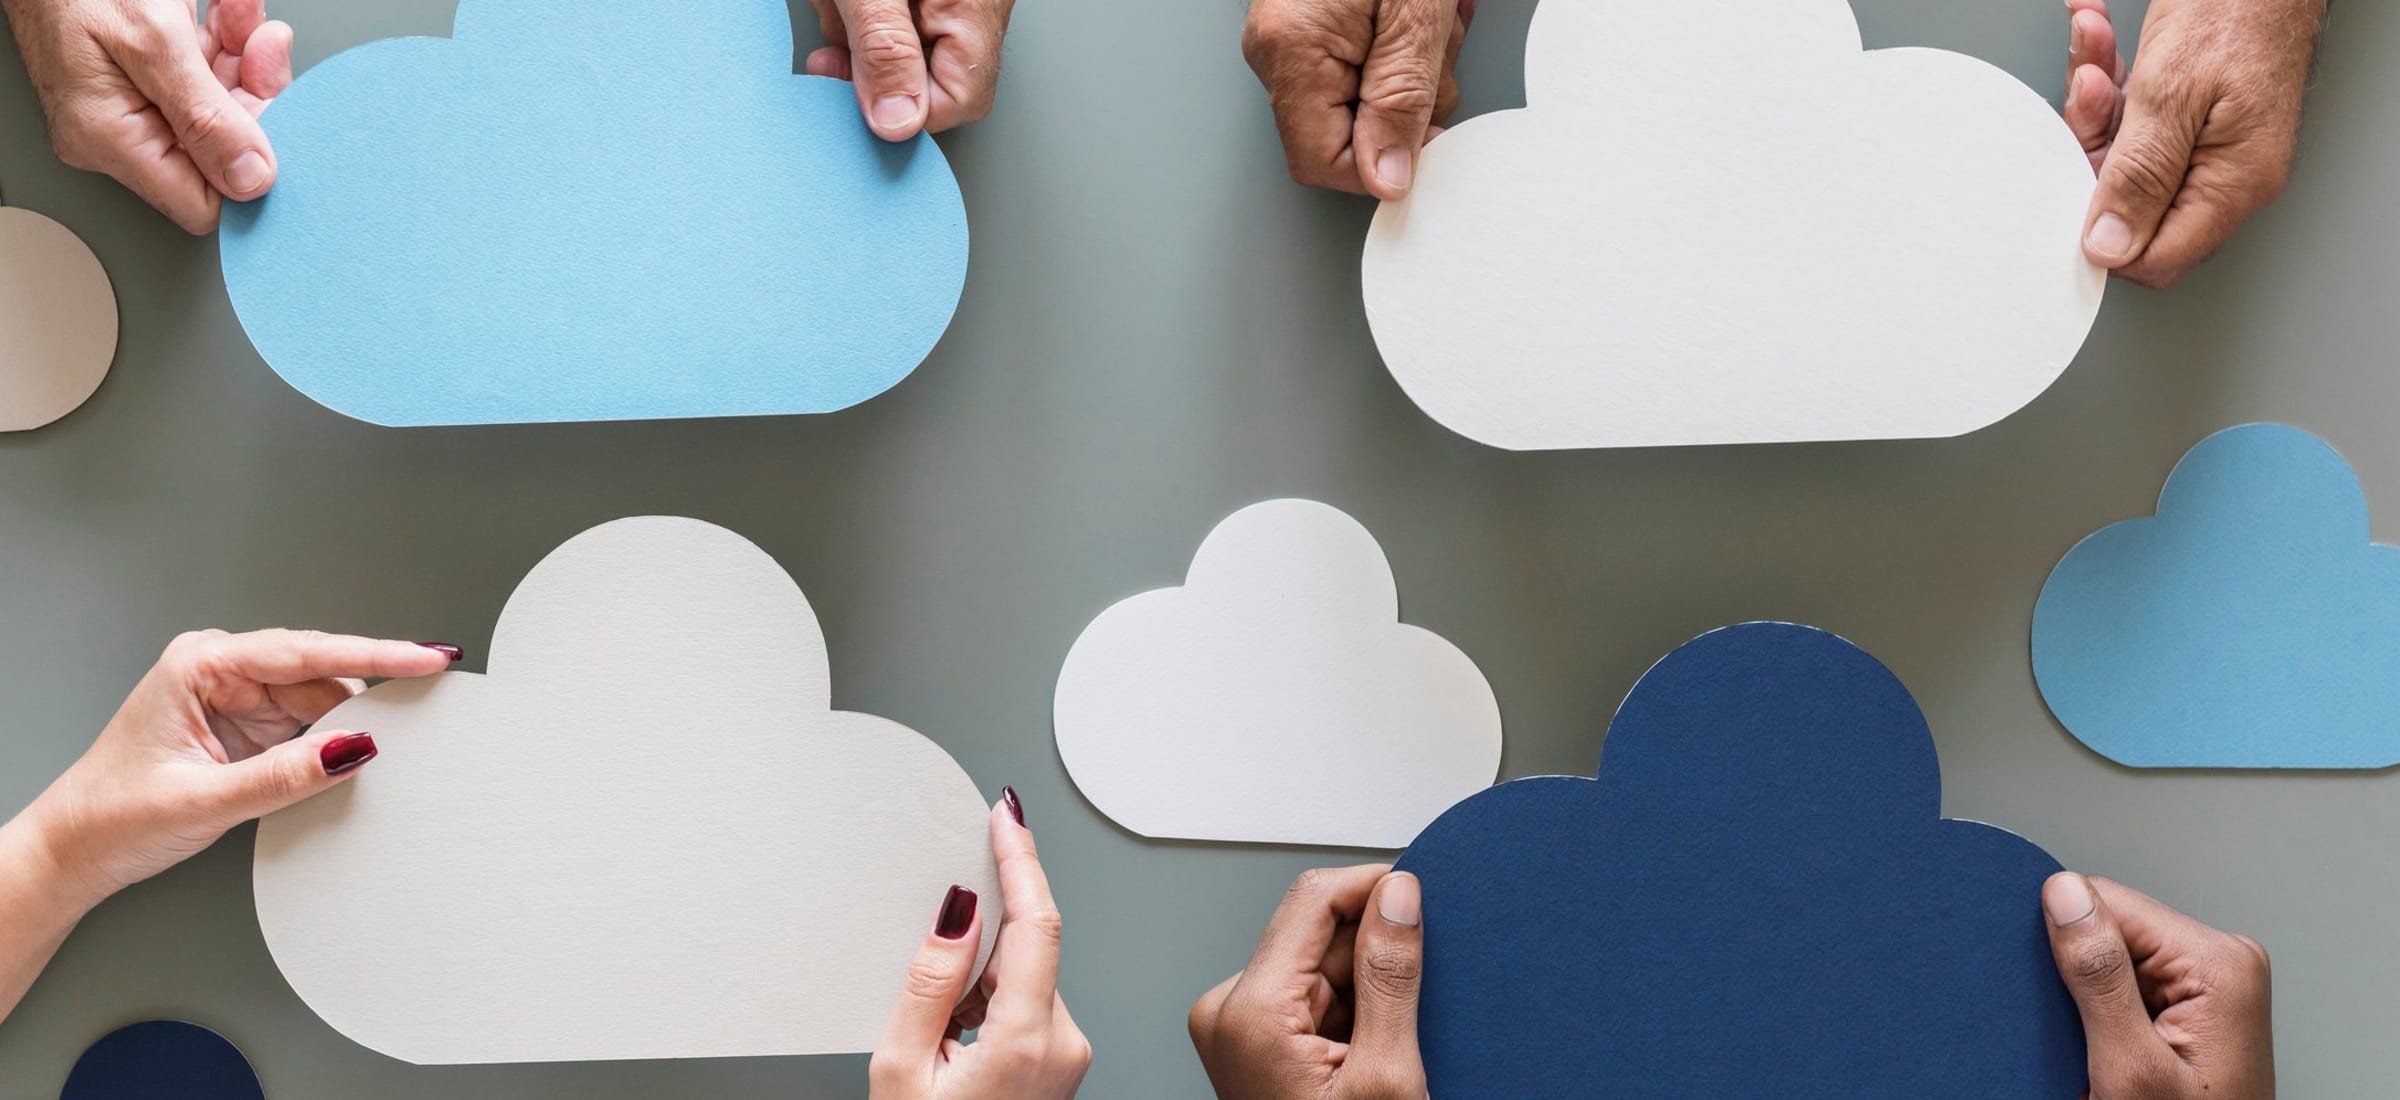 Different people holding paper clouds